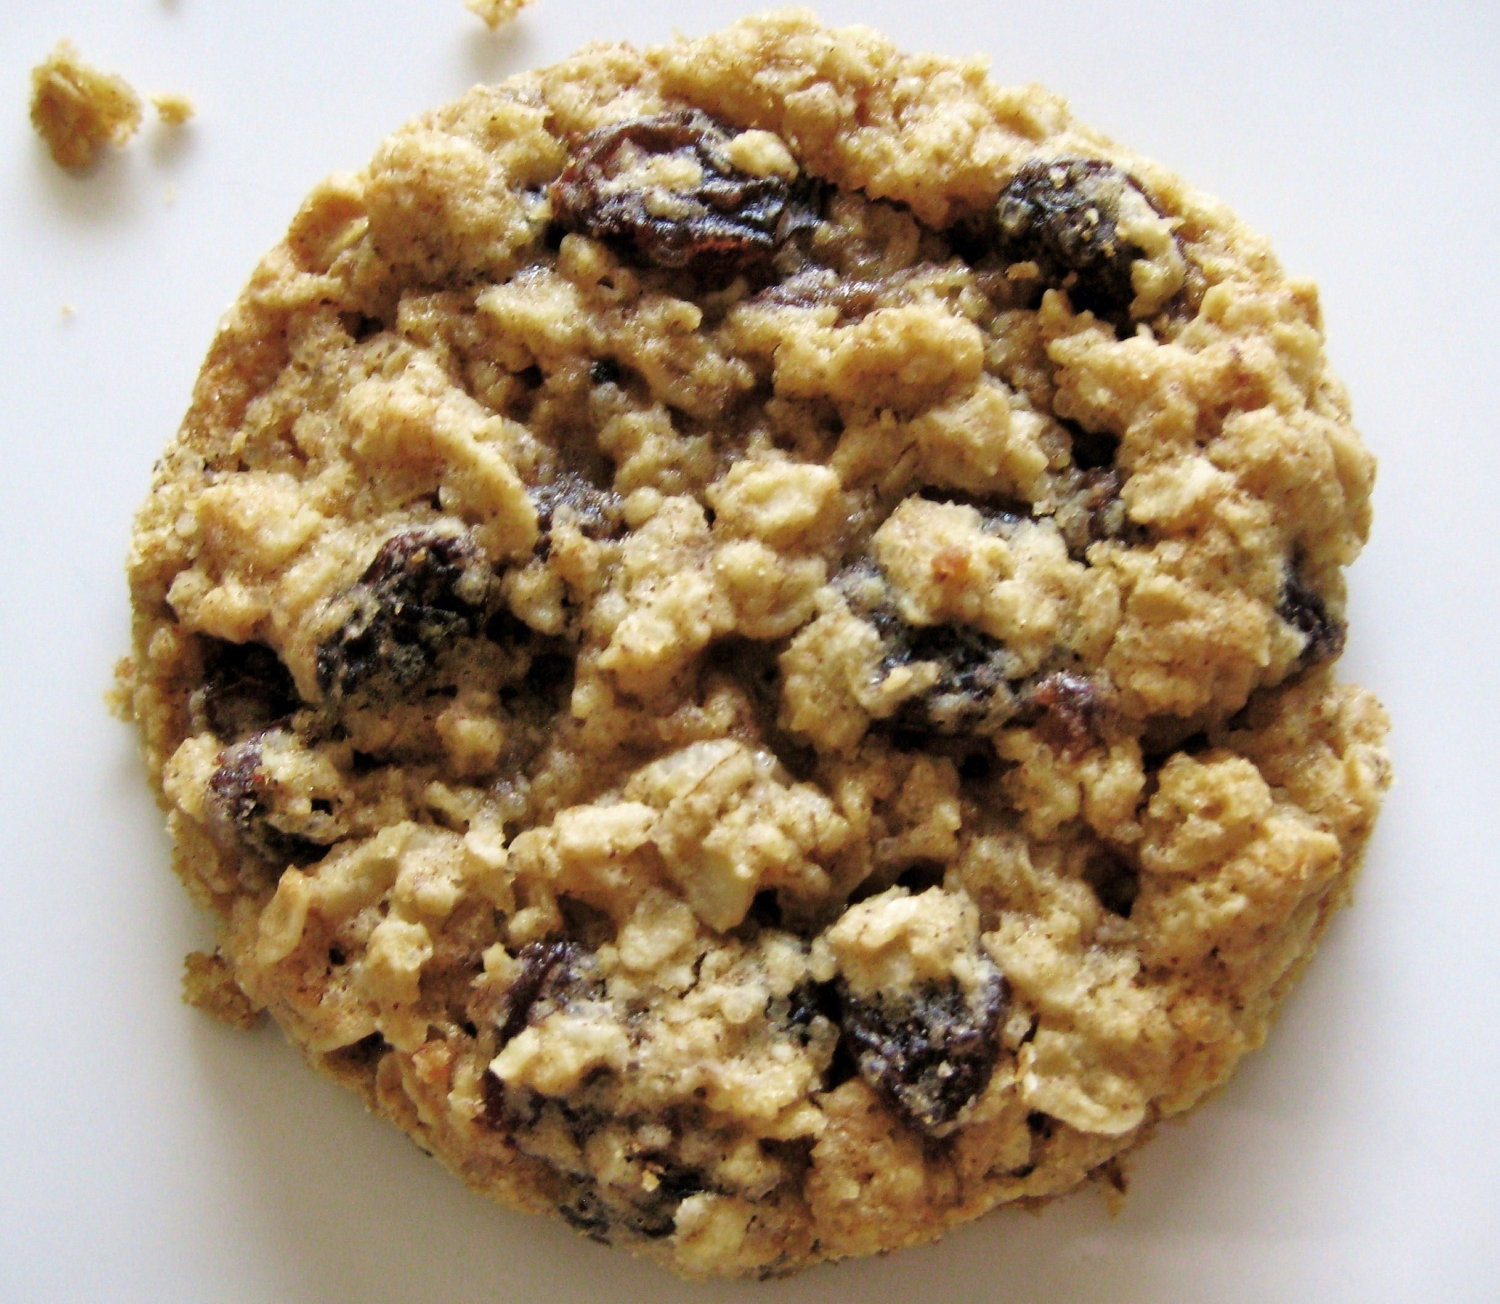 Oatmeal Raisin Cookies by KristinandScott on Etsy